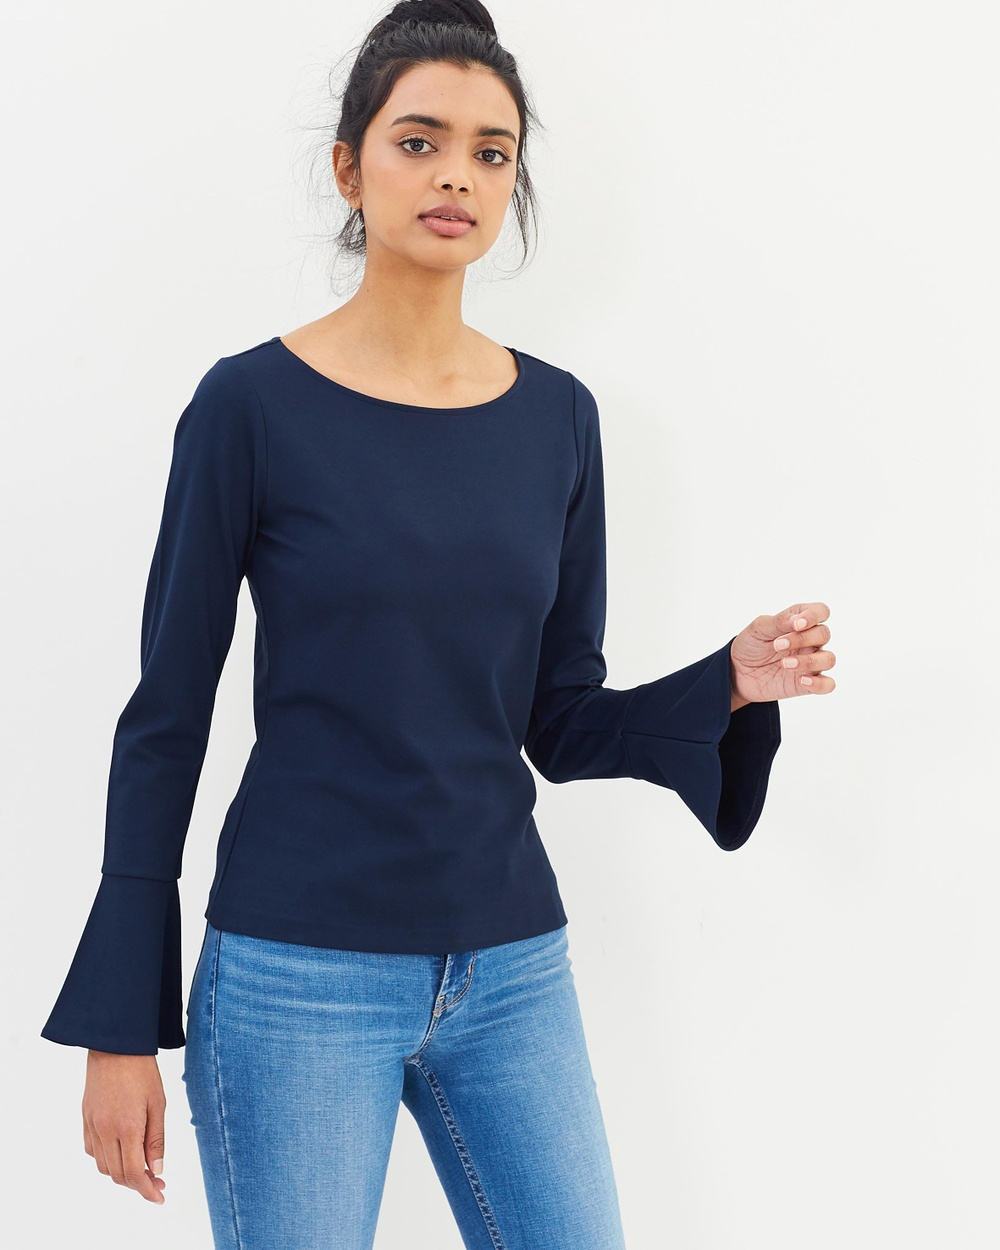 Polo Ralph Lauren Lauren Bell Sleeve Top Tops Navy Lauren Bell Sleeve Top